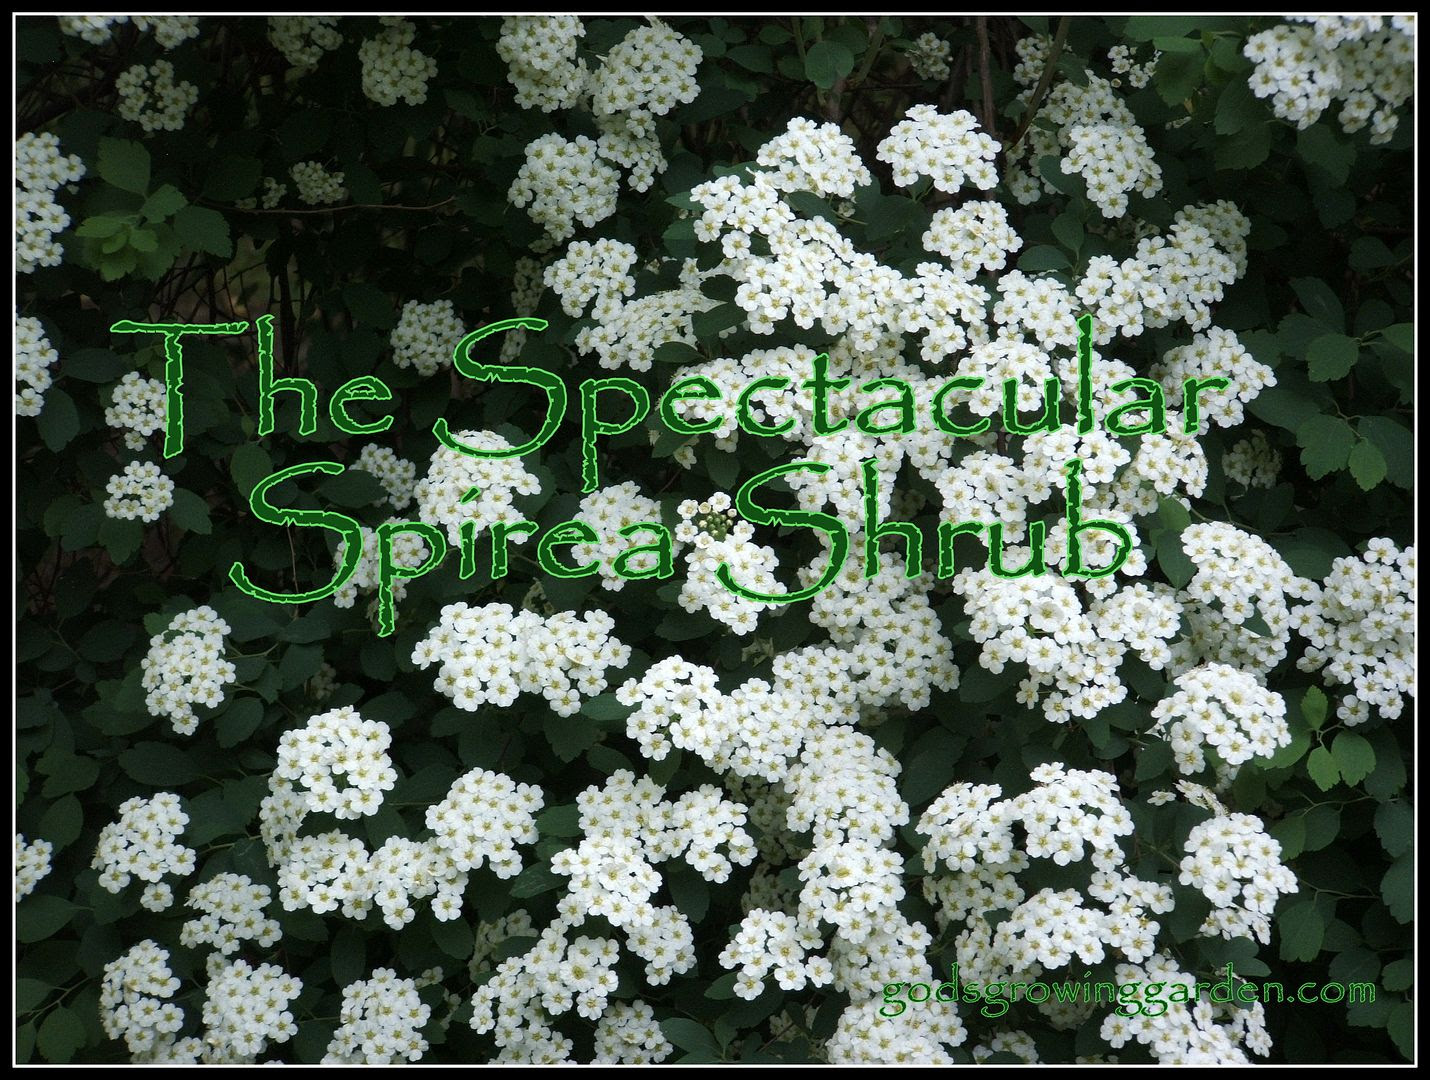 Spirea by Angie Ouellette-Tower for godsgrowinggarden.com photo 002_zps336b33ef.jpg